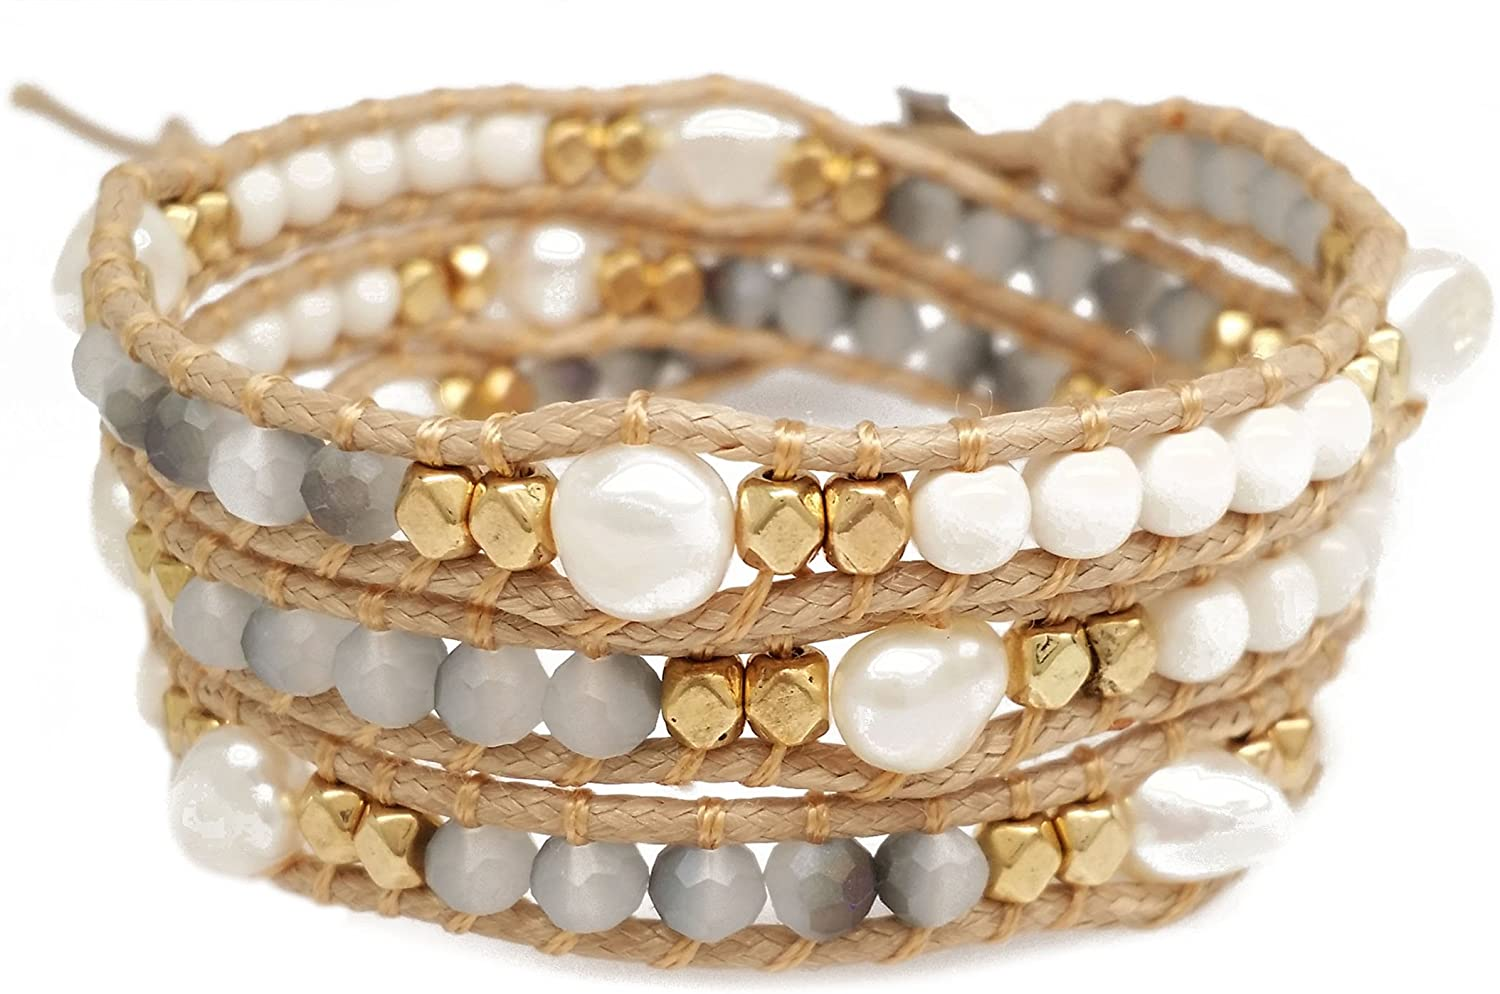 DazzleBlvd Women's Beaded Wrap Handmade Bracelet, Freshwater Pearls, Gold Metal Beads, and Grey Faceted Beads, 3 Wrap Bracelet